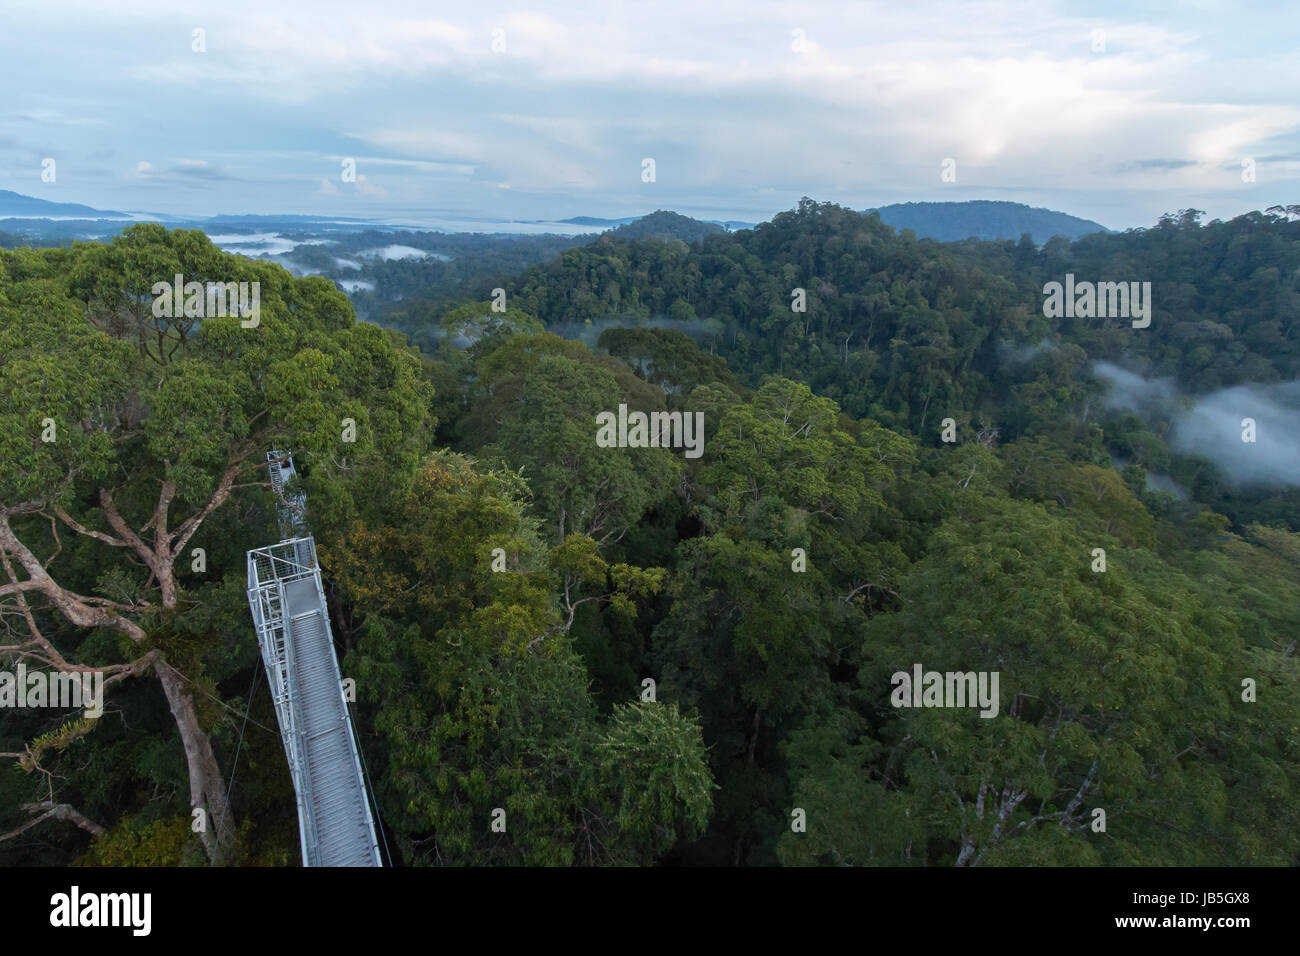 Lush tropical rianforest in Ulu Temburong National Park in Brunei - Stock Image